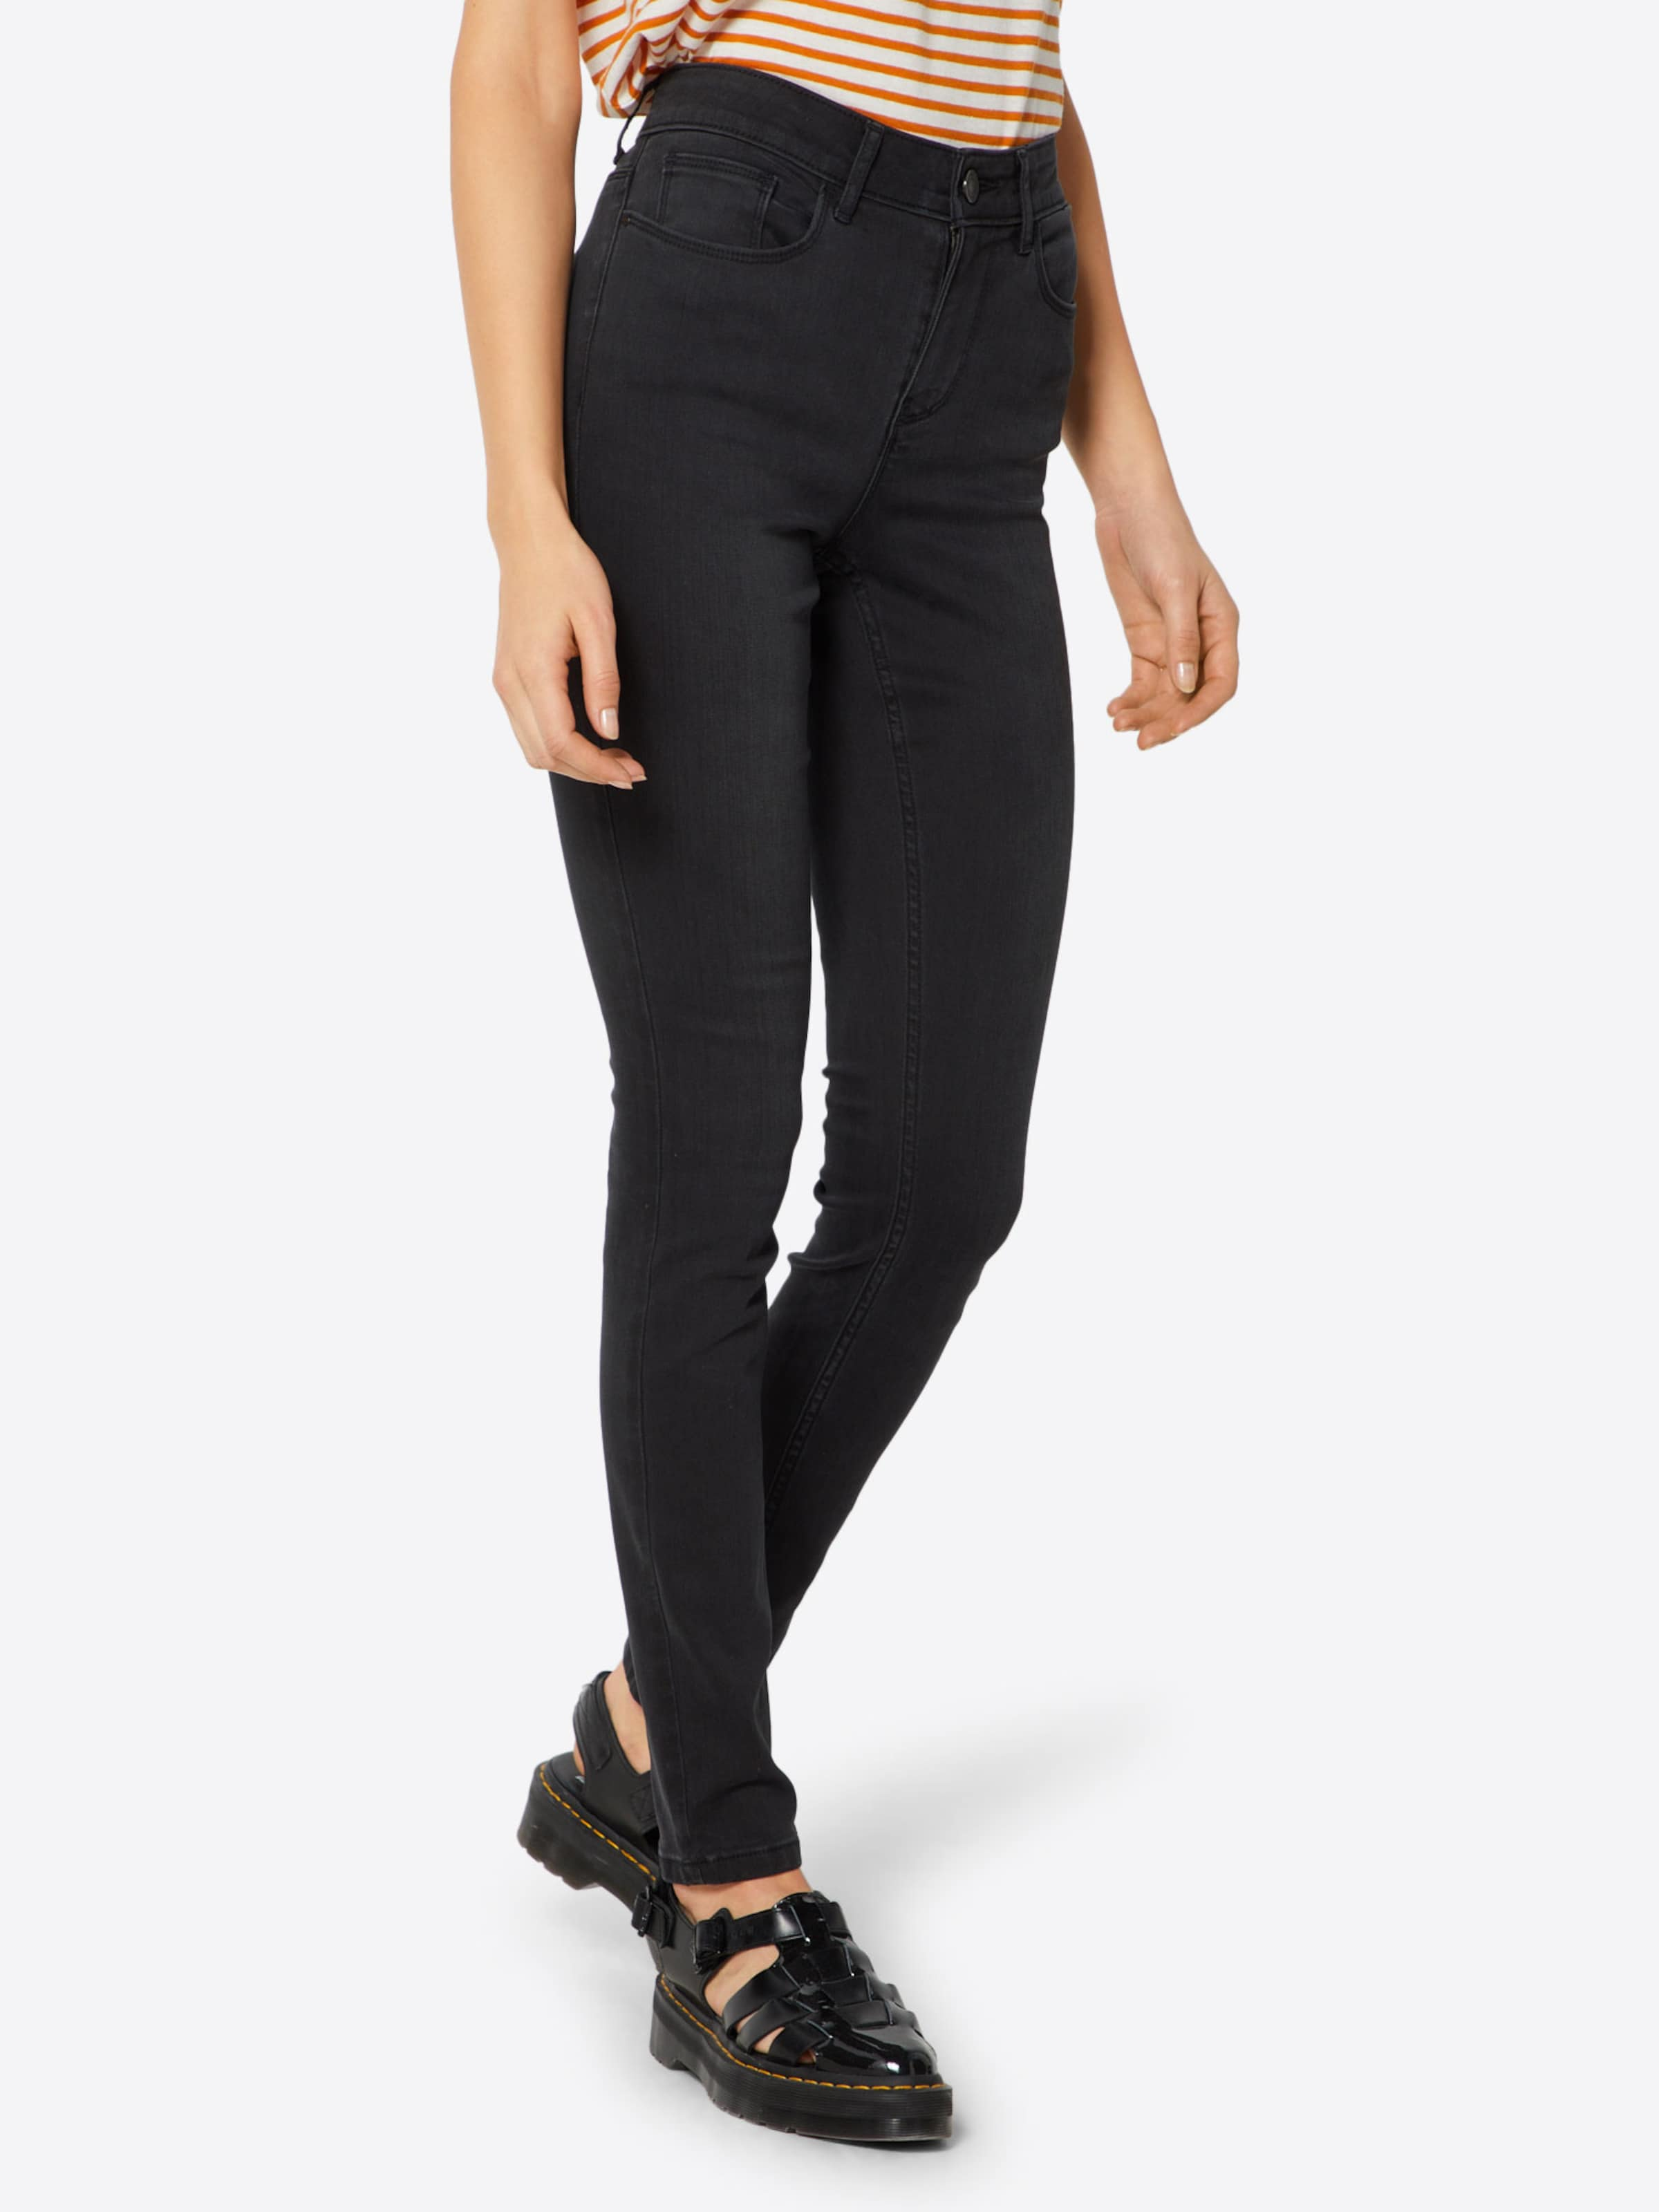 Vila In Black Vila Jeans Denim Black Vila Jeans Denim In Jeans In 9e2YIWEHDb